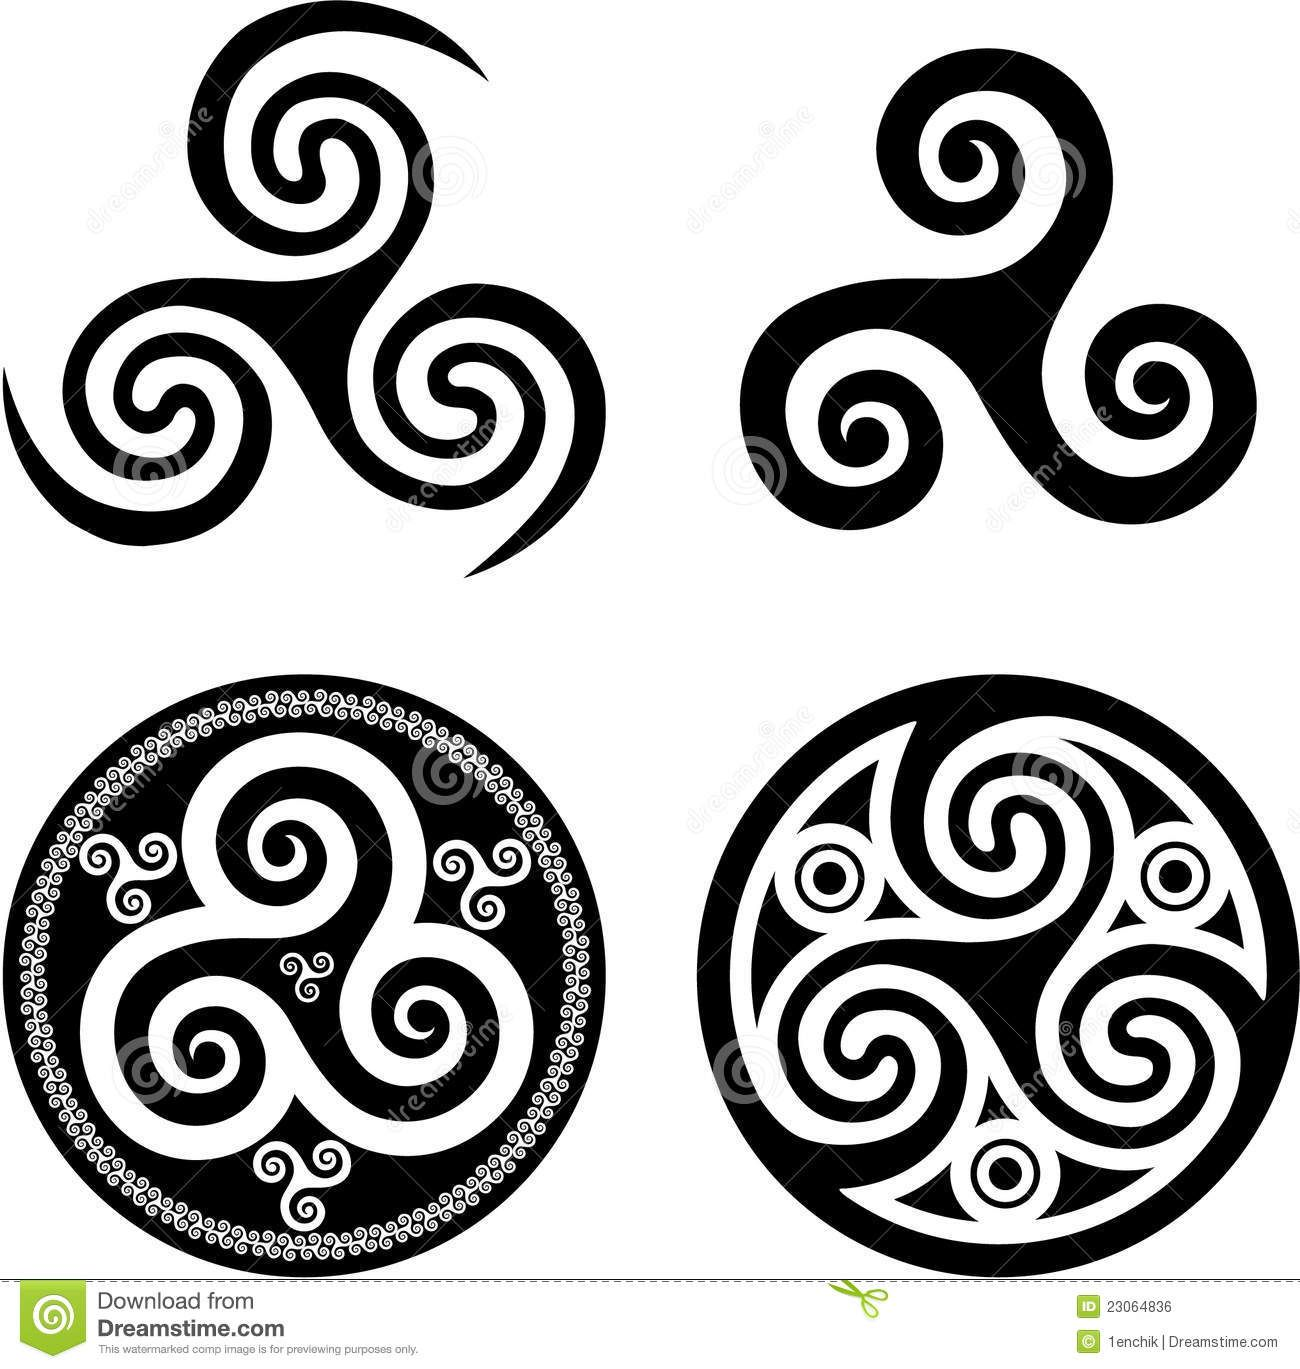 Irish Gaelic Tattoos And Meanings: Scottish Symbol For Family Celtic Strength Knot Celtic